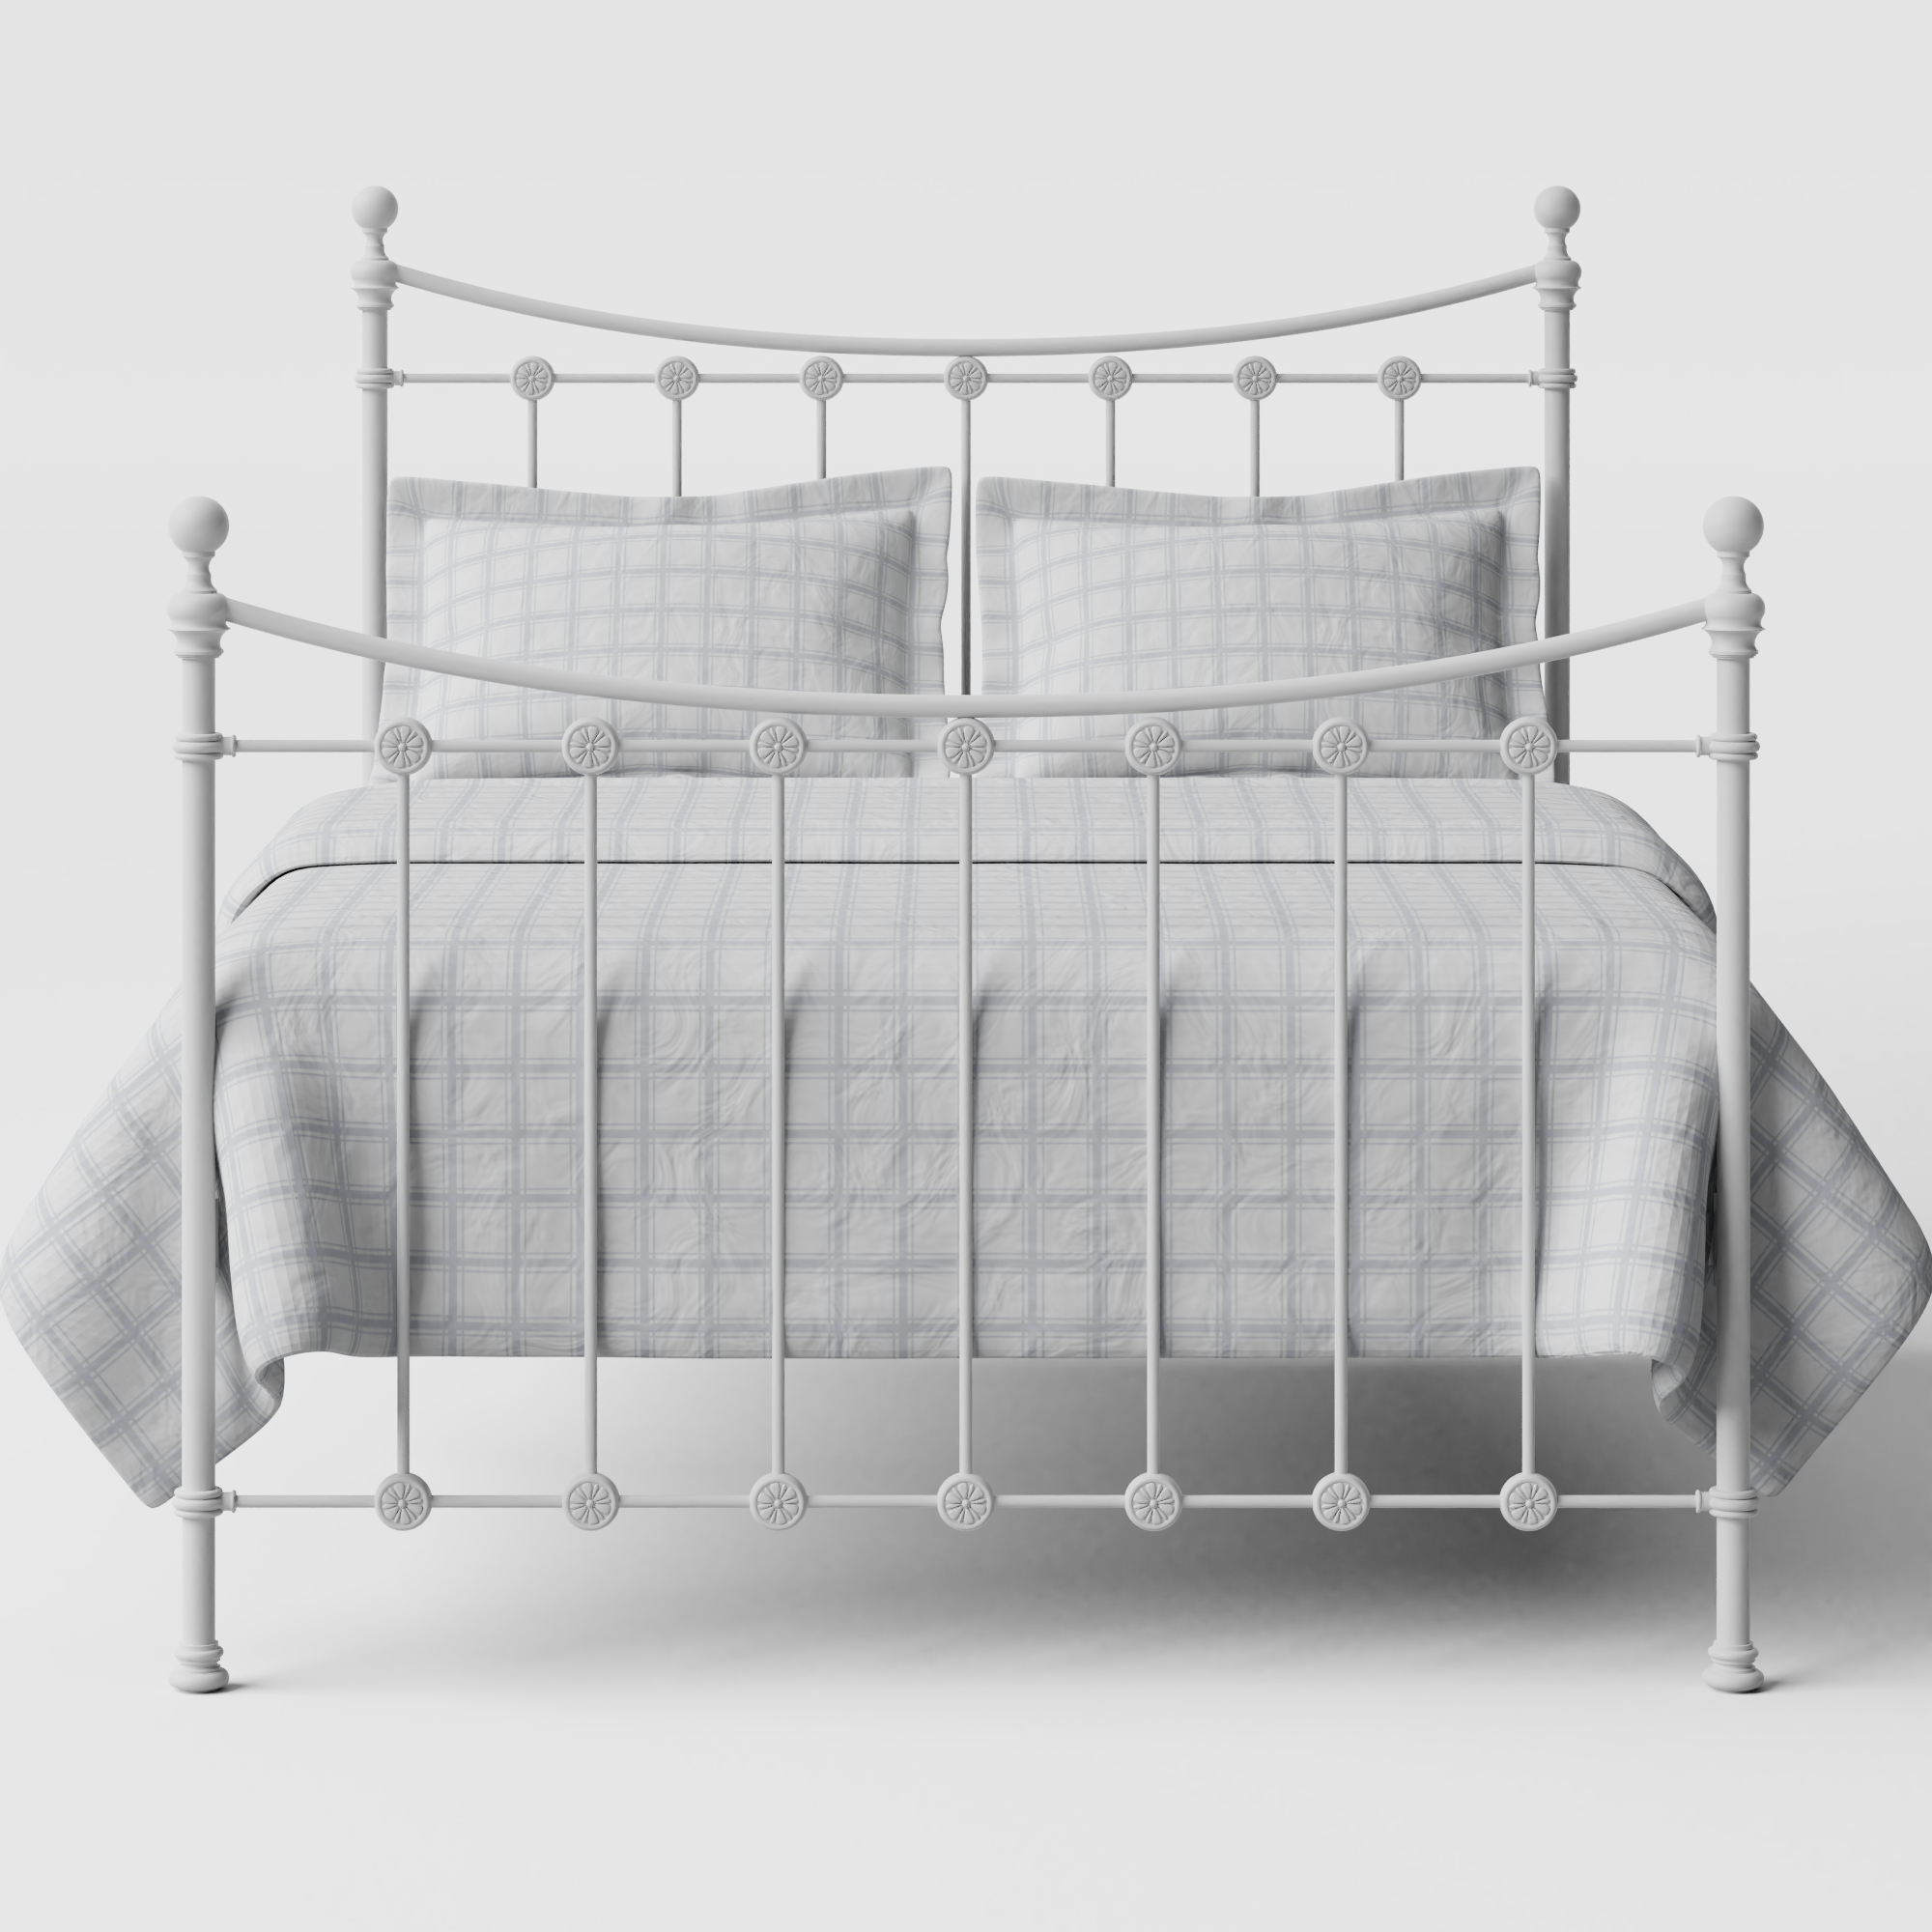 Carrick Solo iron/metal bed in white